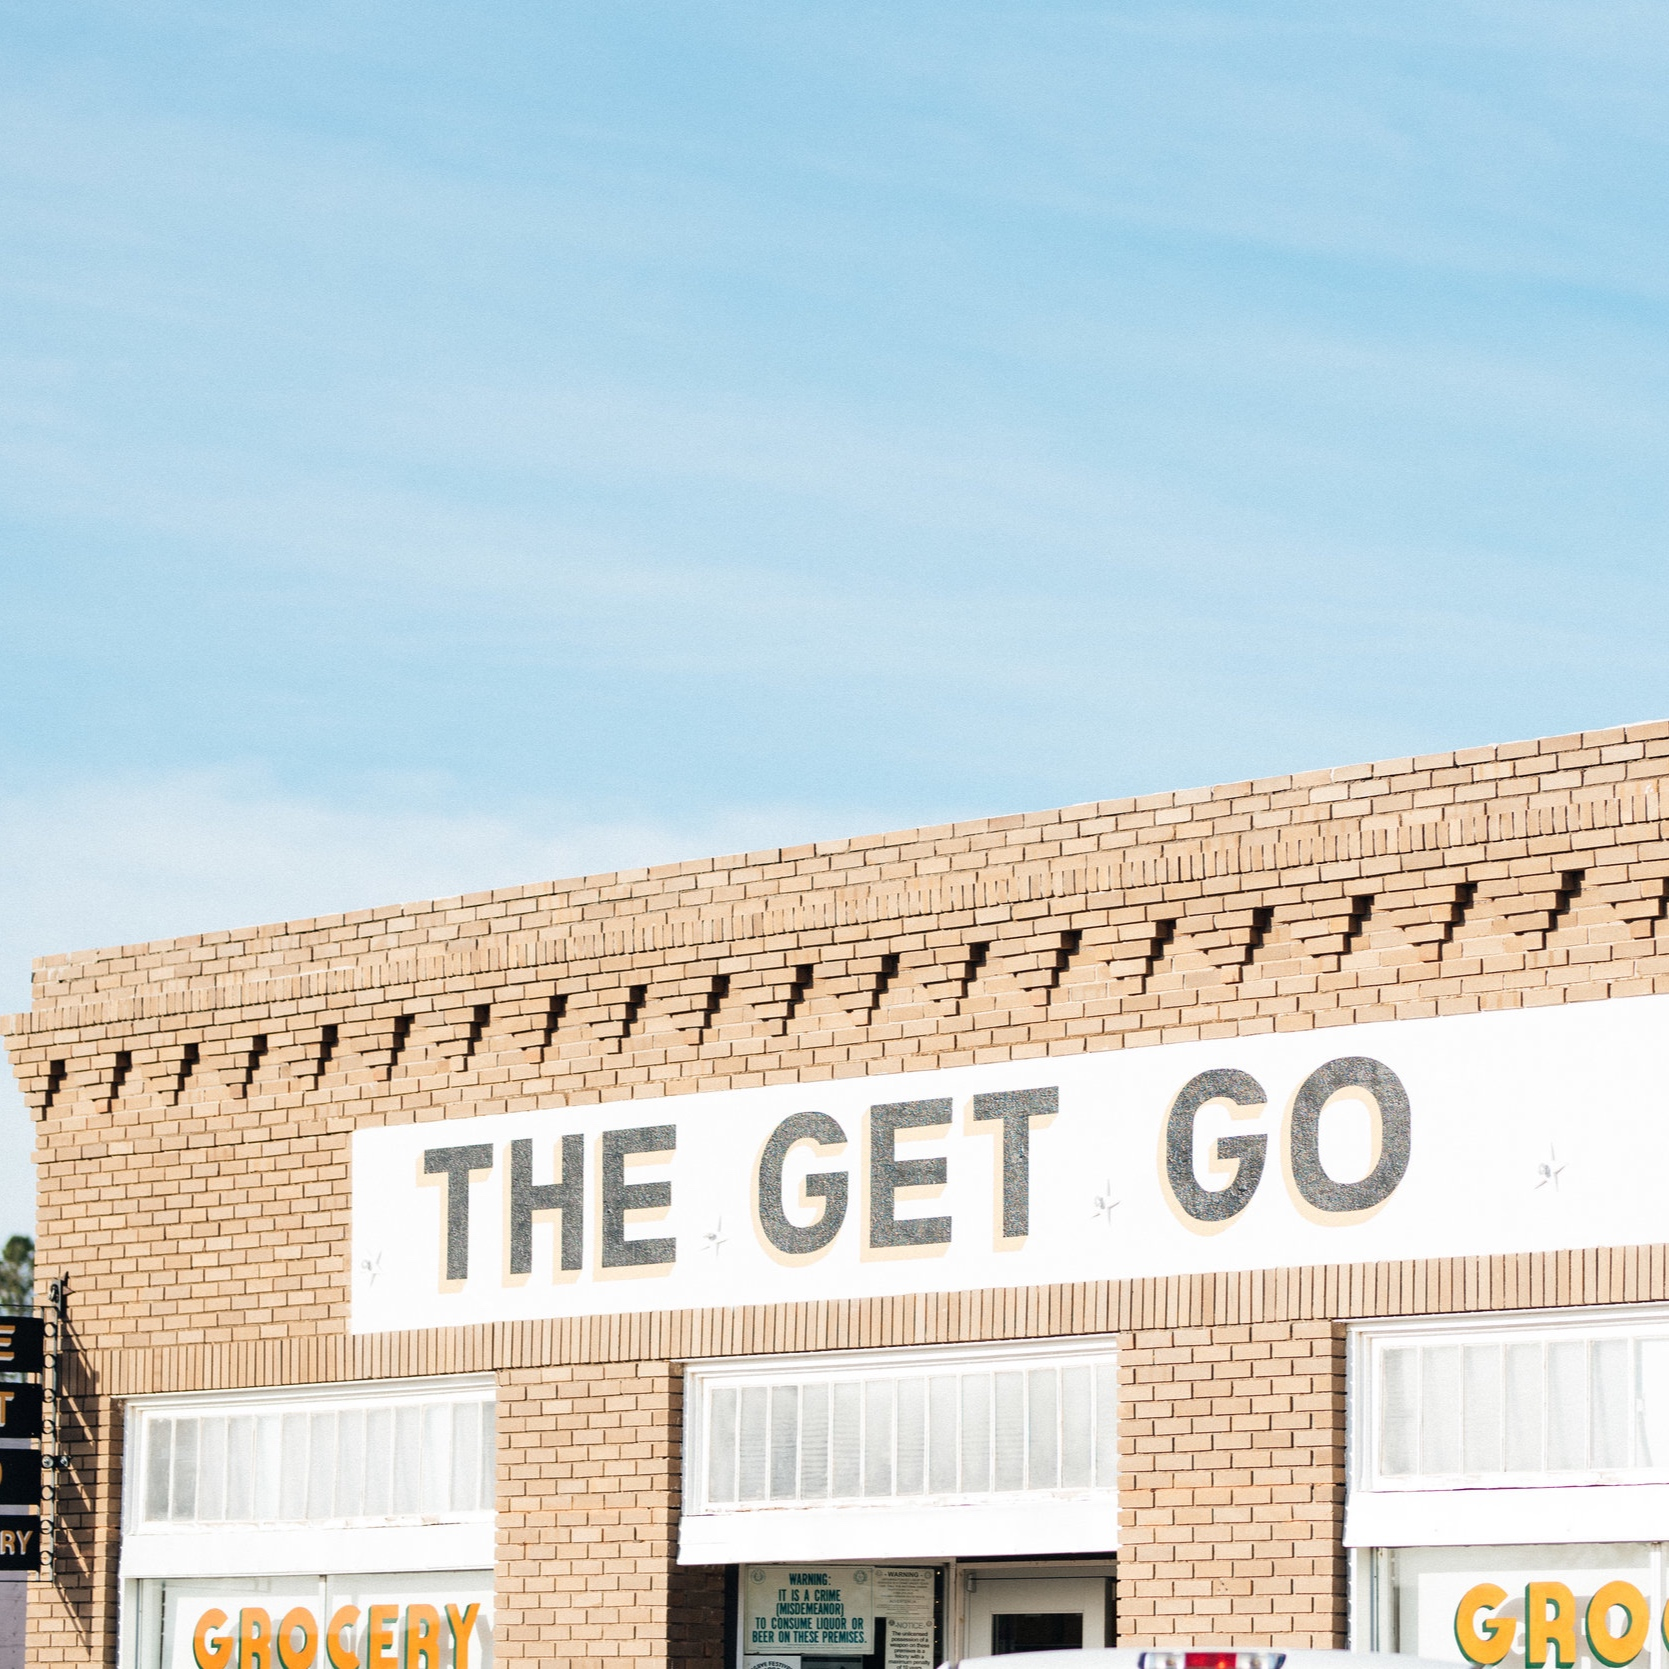 THE GET GO - THIS IS THE WHOLE FOODS OF MARFA. CHOCK FULL OF ARTISANAL CHEESES, MEATS, FRESH VEGGIES + FRUITS, AS WELL AS LOCAL COFFEE, BEER AND SNACKS. WE WISH THIS STORE WAS OUR NEIGHBORHOOD GROCER. DON'T FORGET TO PICK UP ONE OF THE GET GO'S CUTE TOTES!(PHOTOGRAPHY BY MARSHALL DAVID, SECRETARY STUDIO)